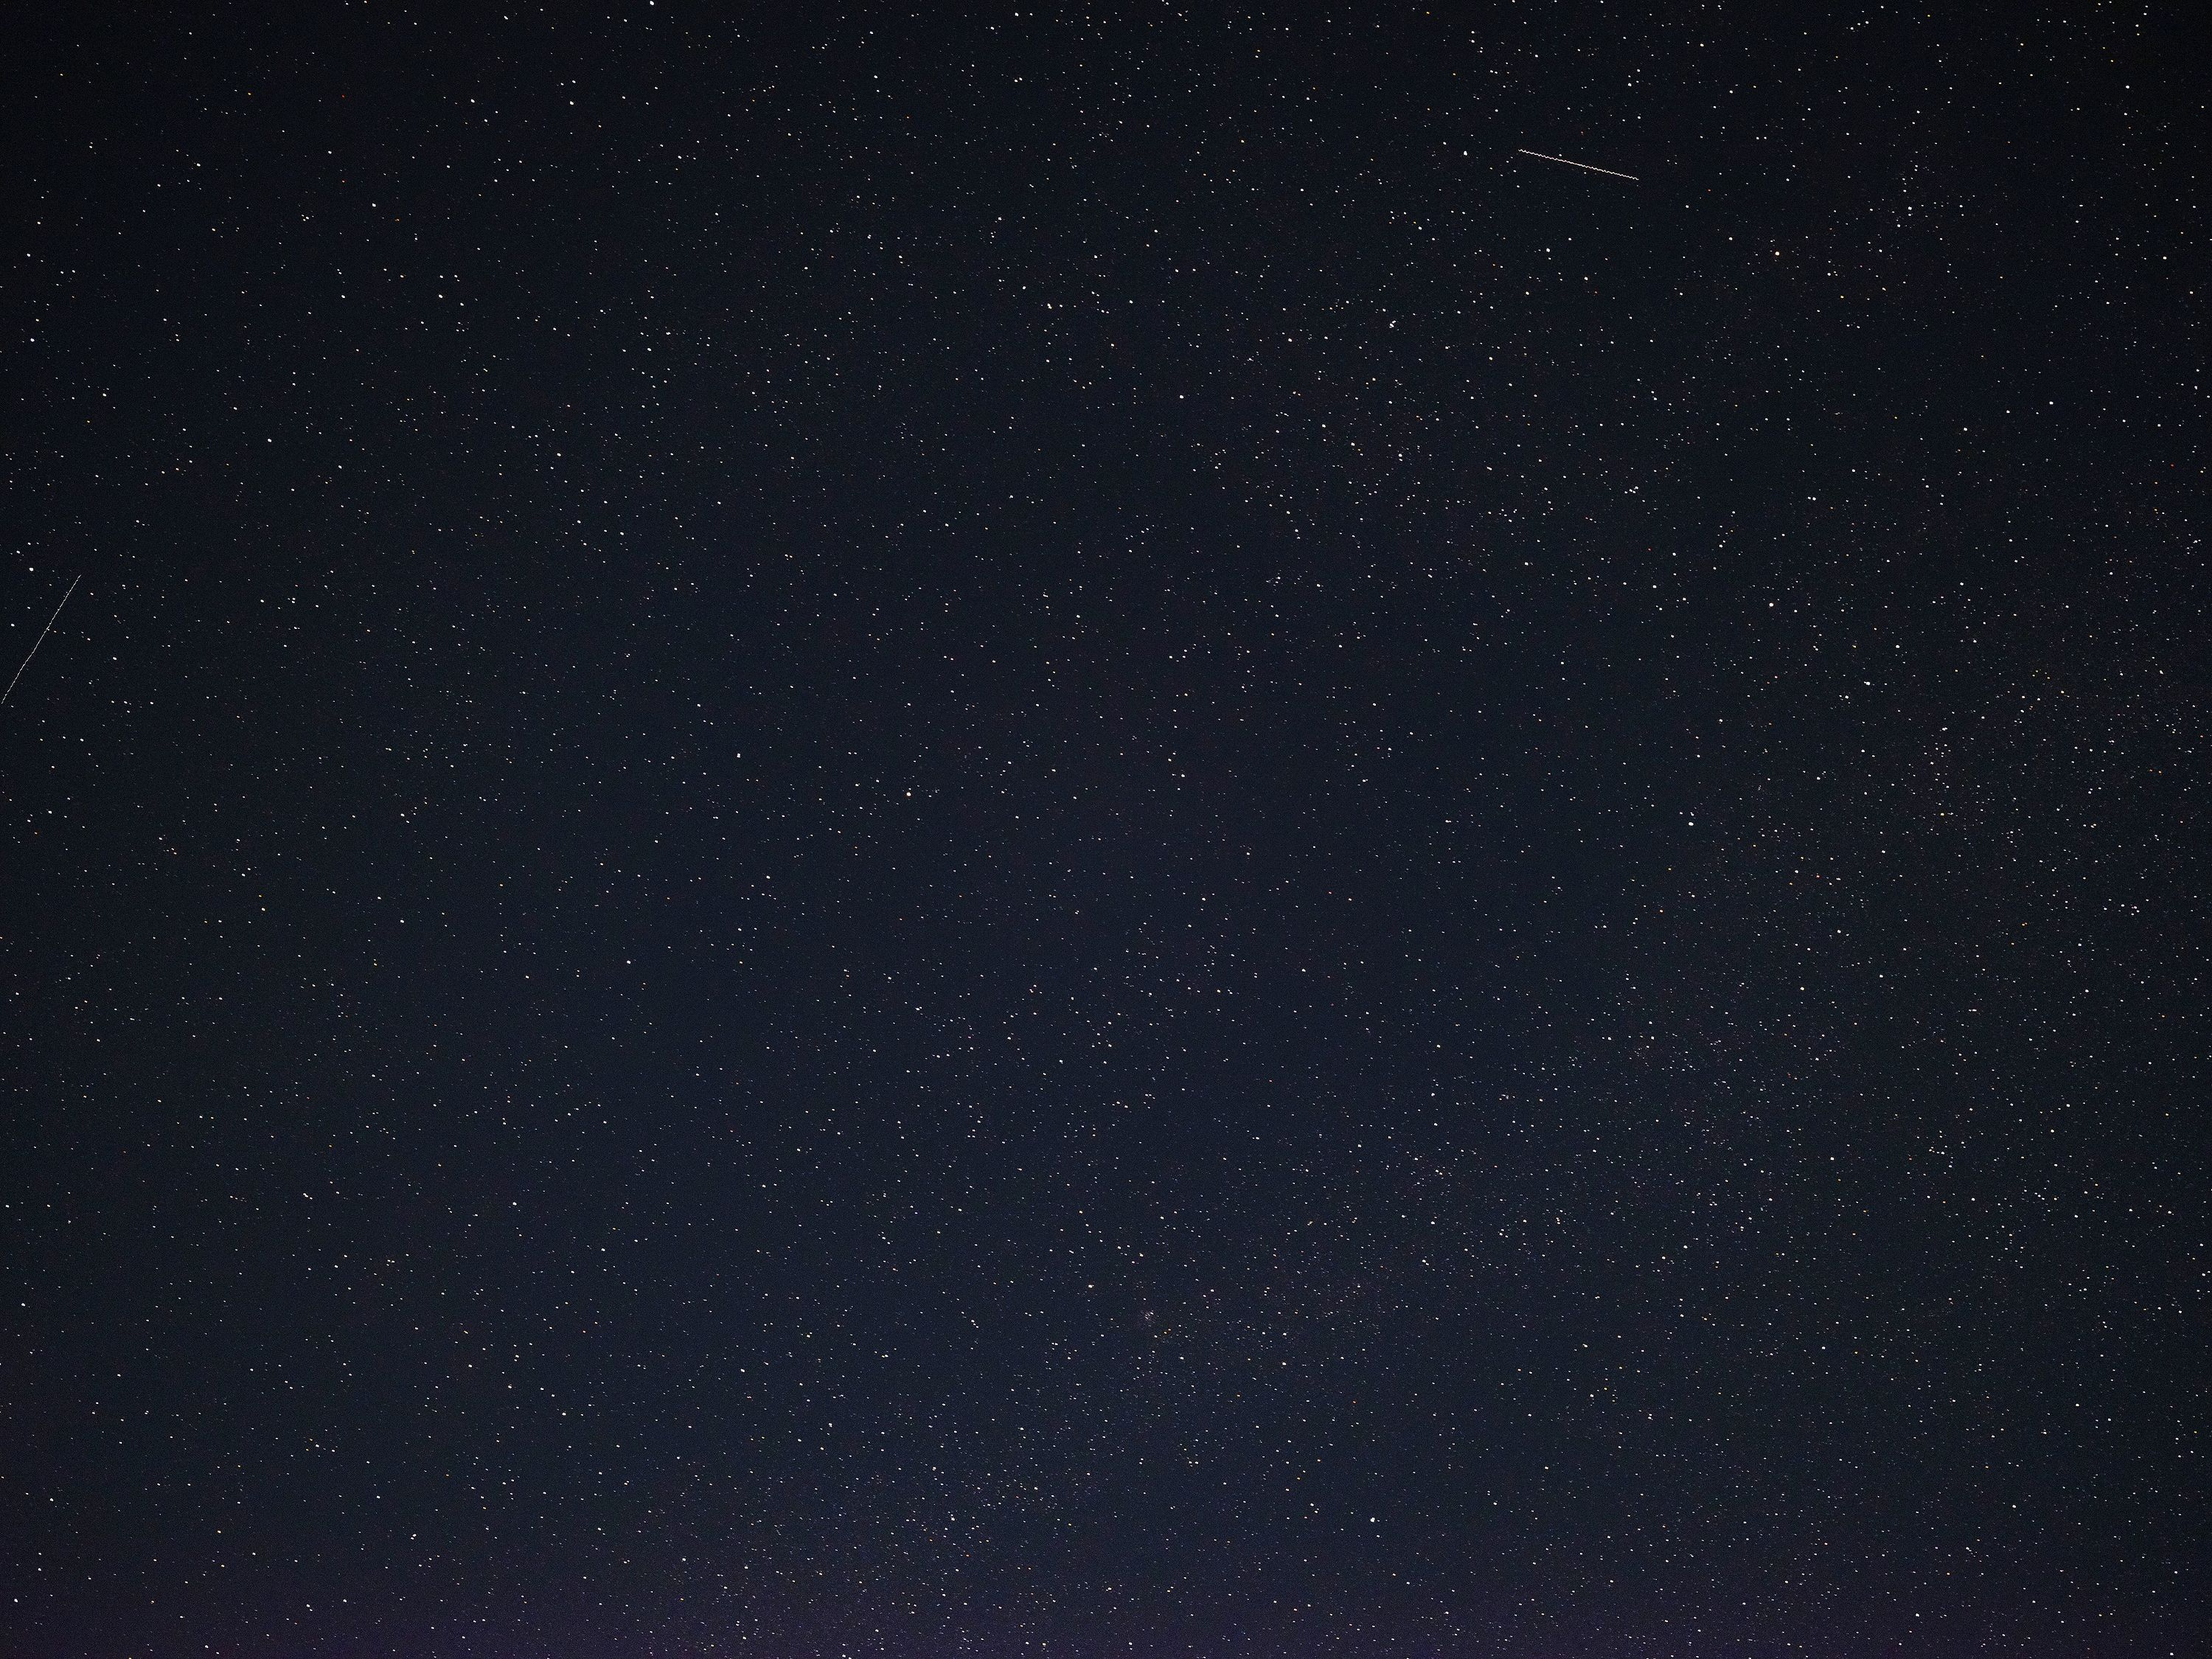 I took a stab at astrophotography with the 23mm too. Why not, right? Not an interesting shot, but man are there ever a lot of stars to look at when you view it 1:1.